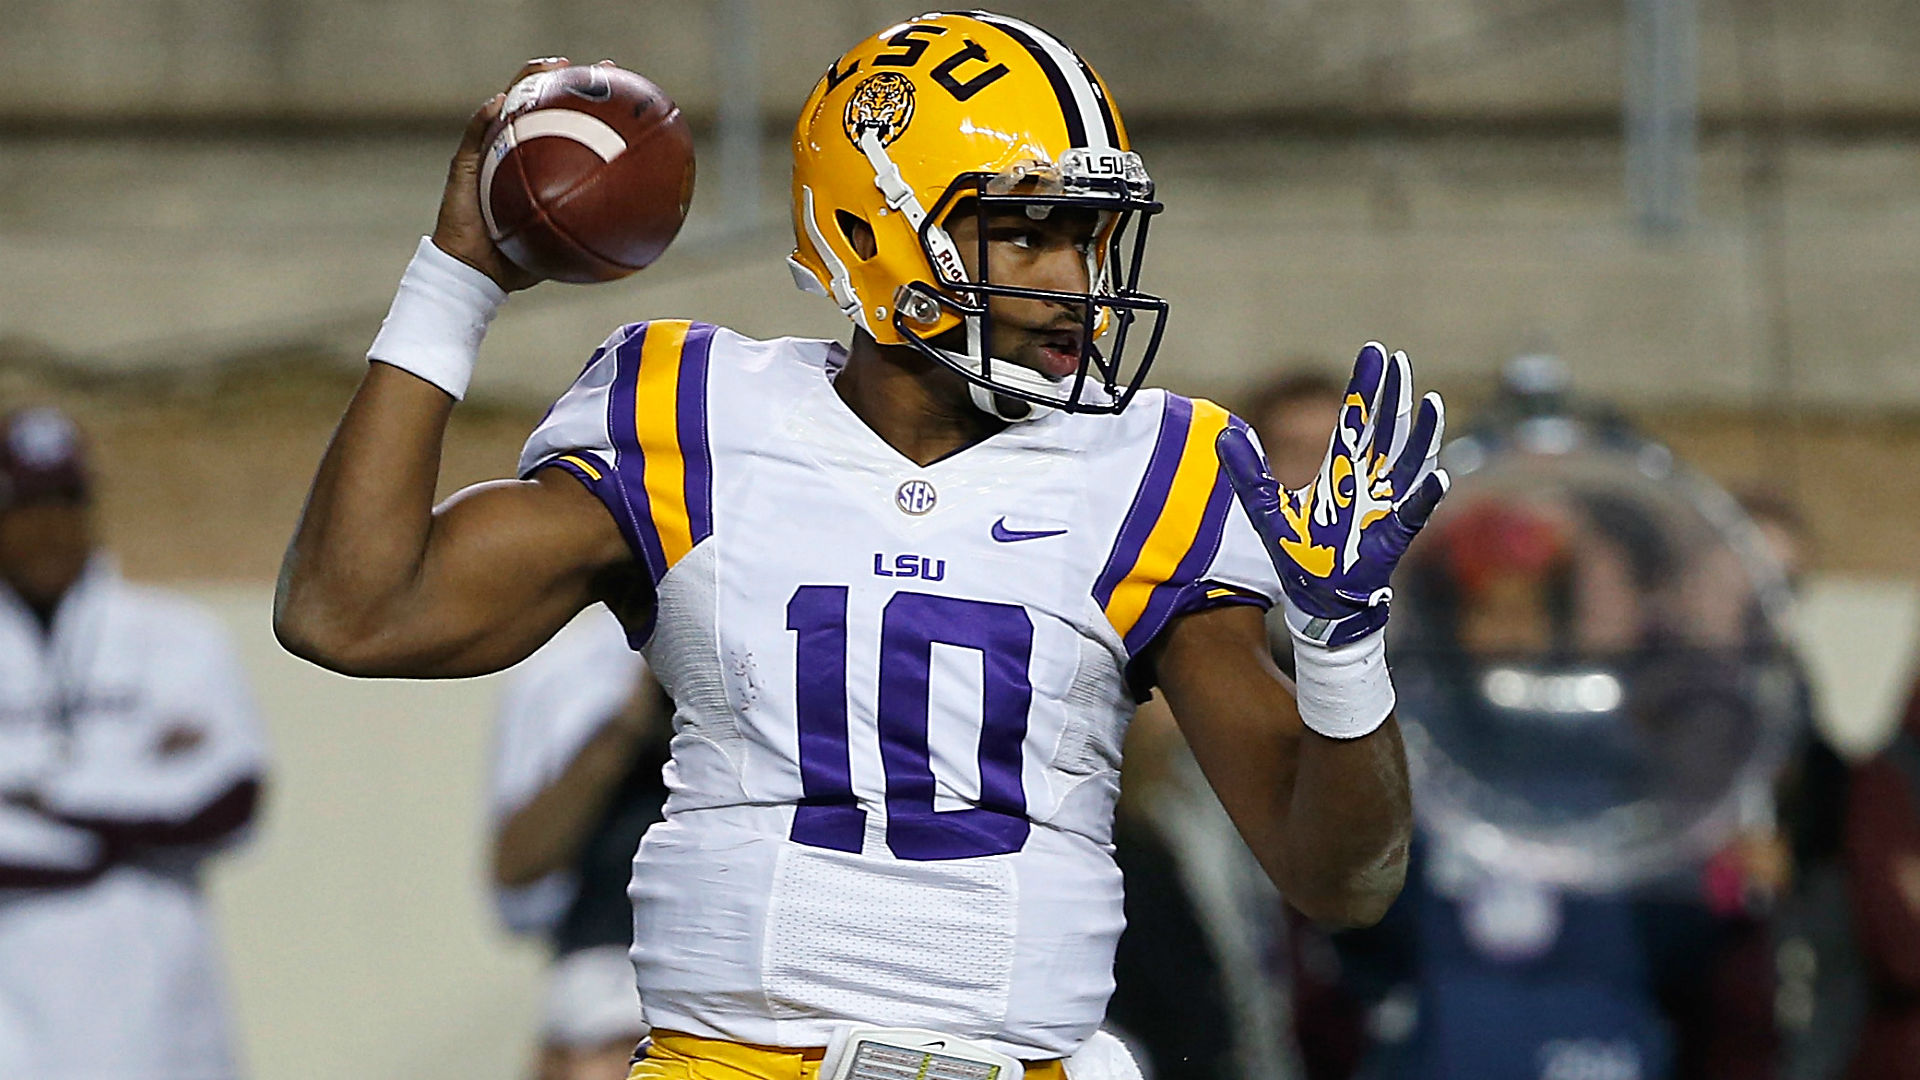 LSU QB Anthony Jennings, teammates won't face charges